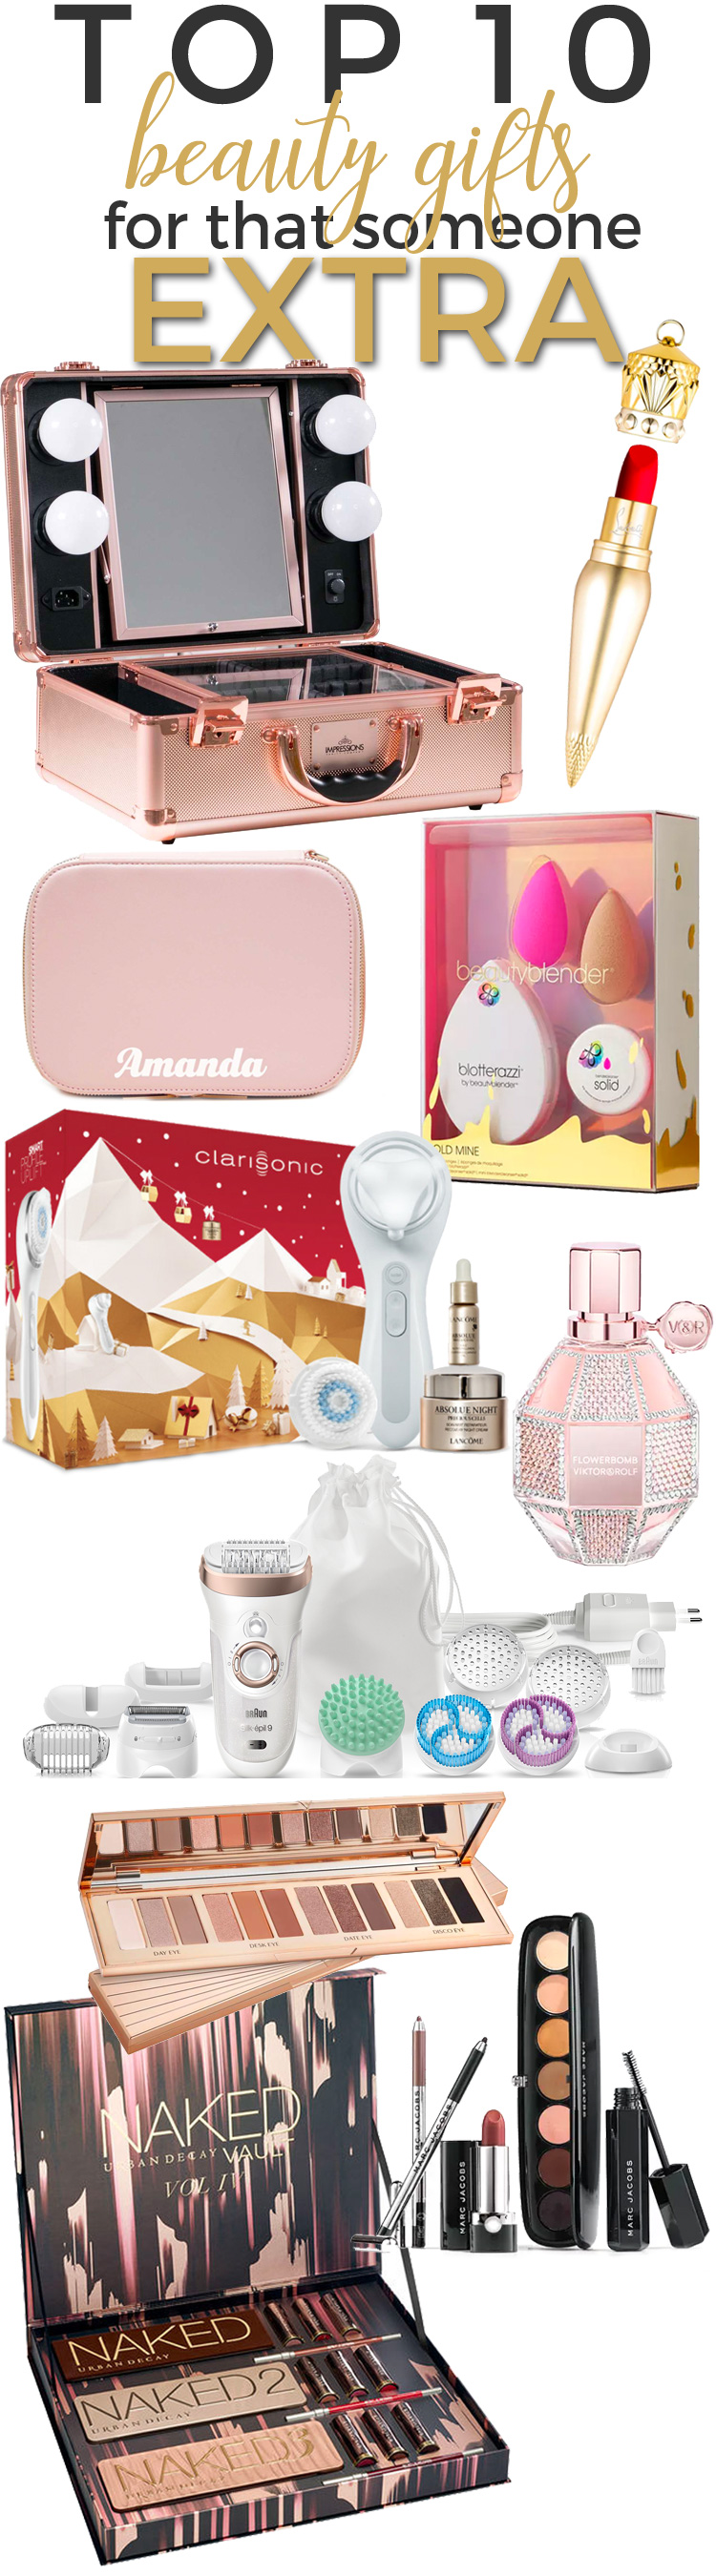 Top 10 Beauty Gifts for that Someone EXTRA